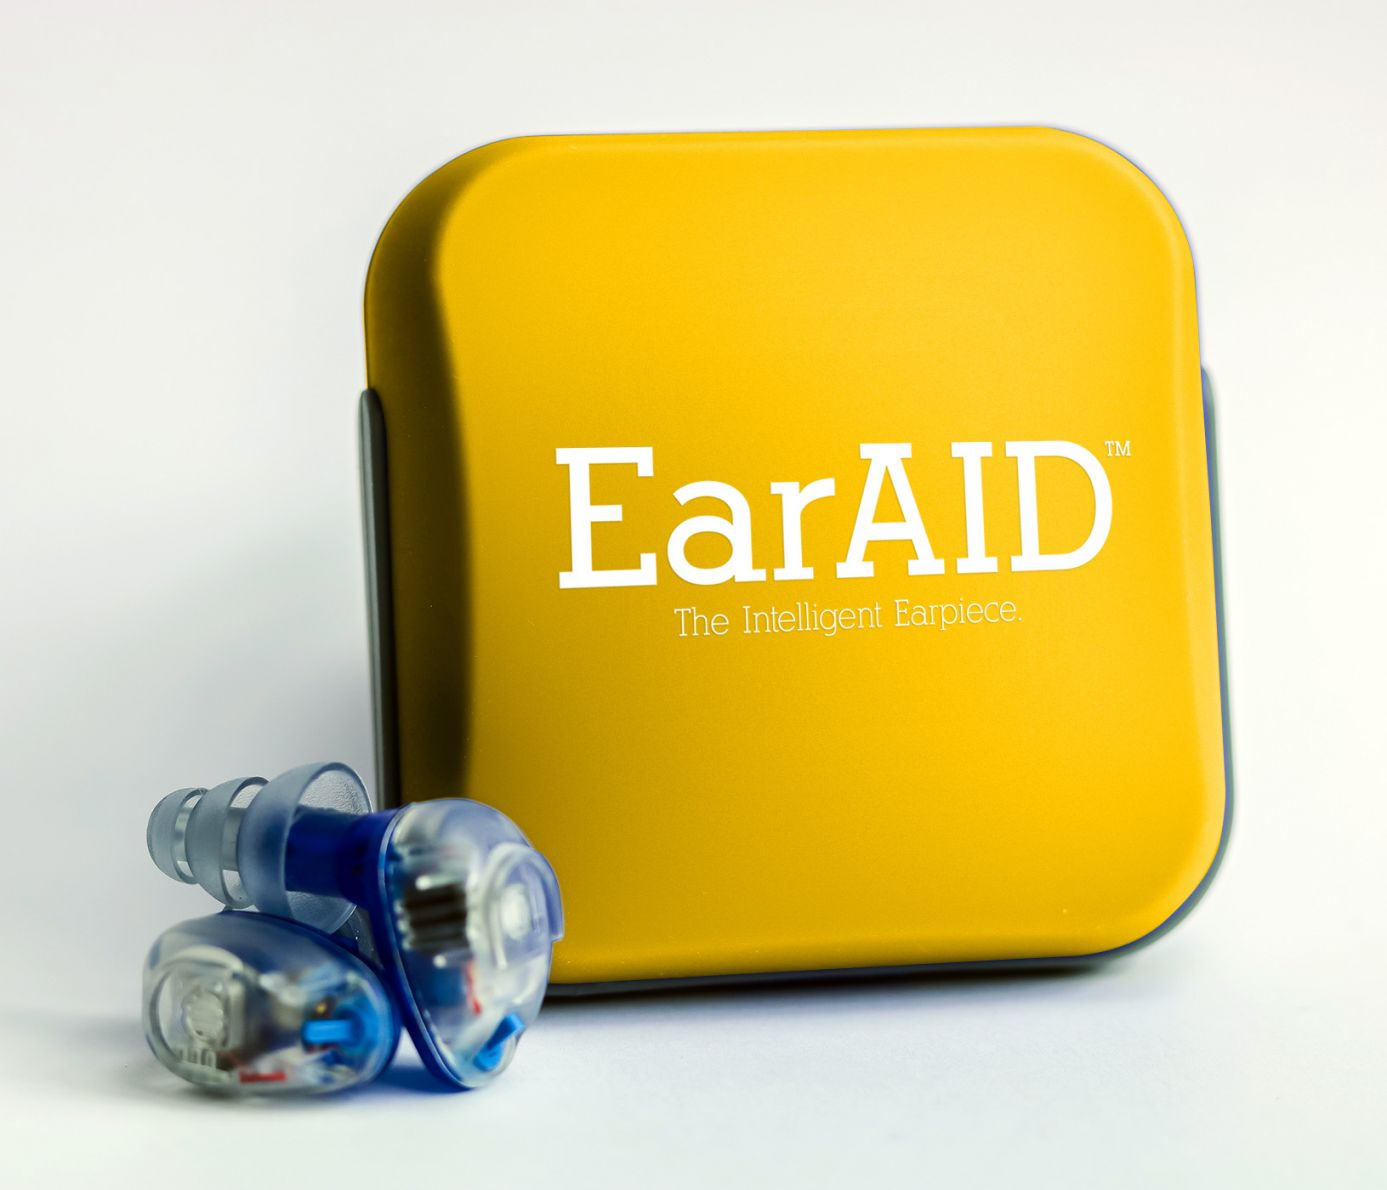 EarAID™. The Intelligent Earpiece.